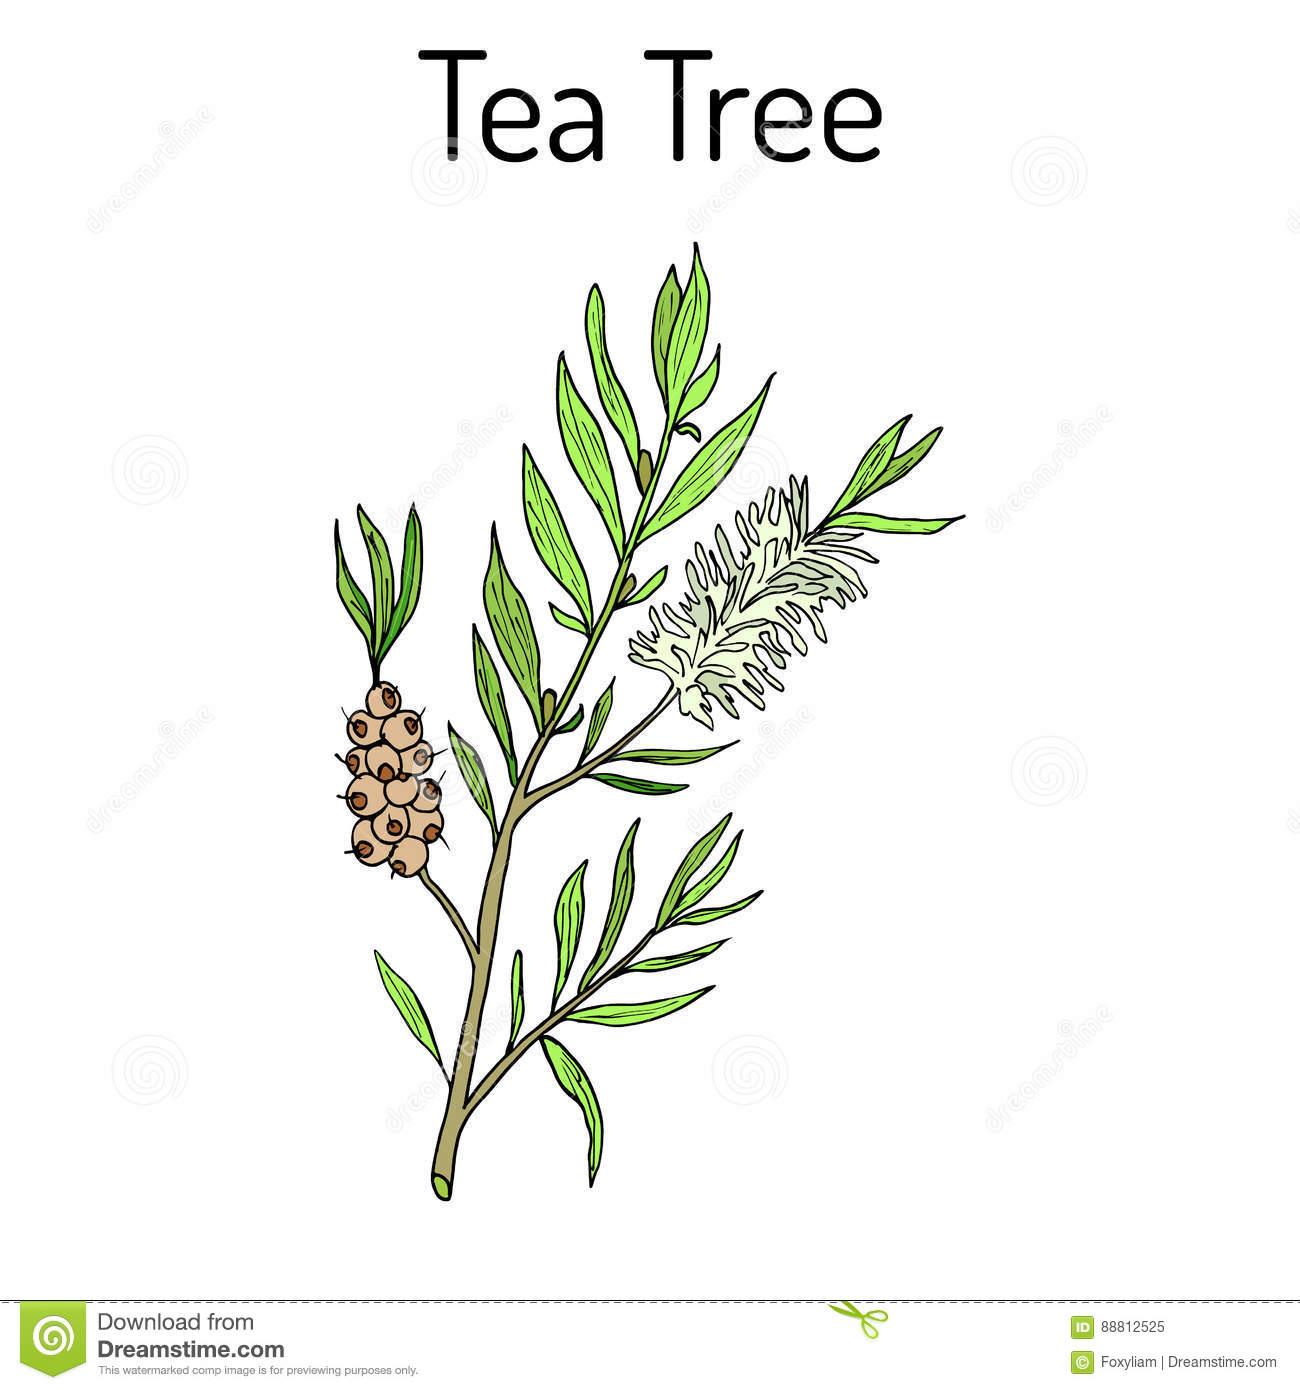 Download Collection Of Tea Tree Cosmetics And Medical Plant Hand Drawn Stock Vector